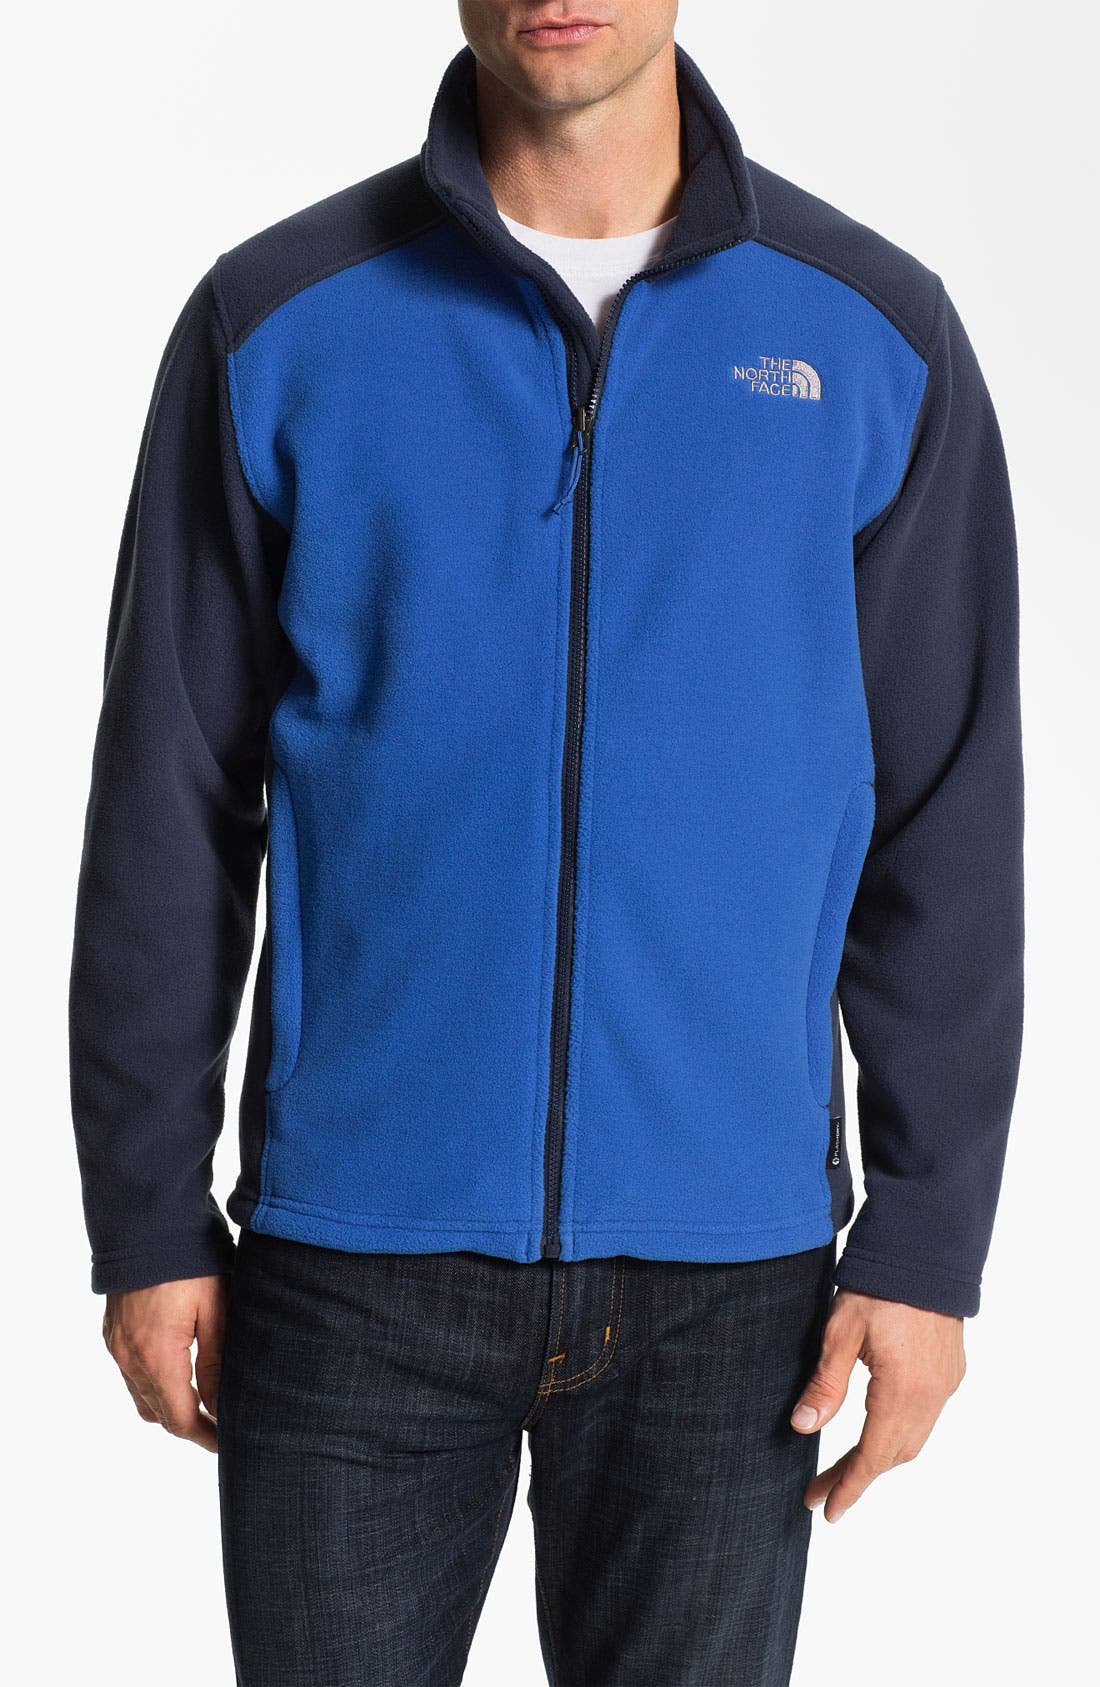 Alternate Image 1 Selected - The North Face 'RDT 300' Jacket